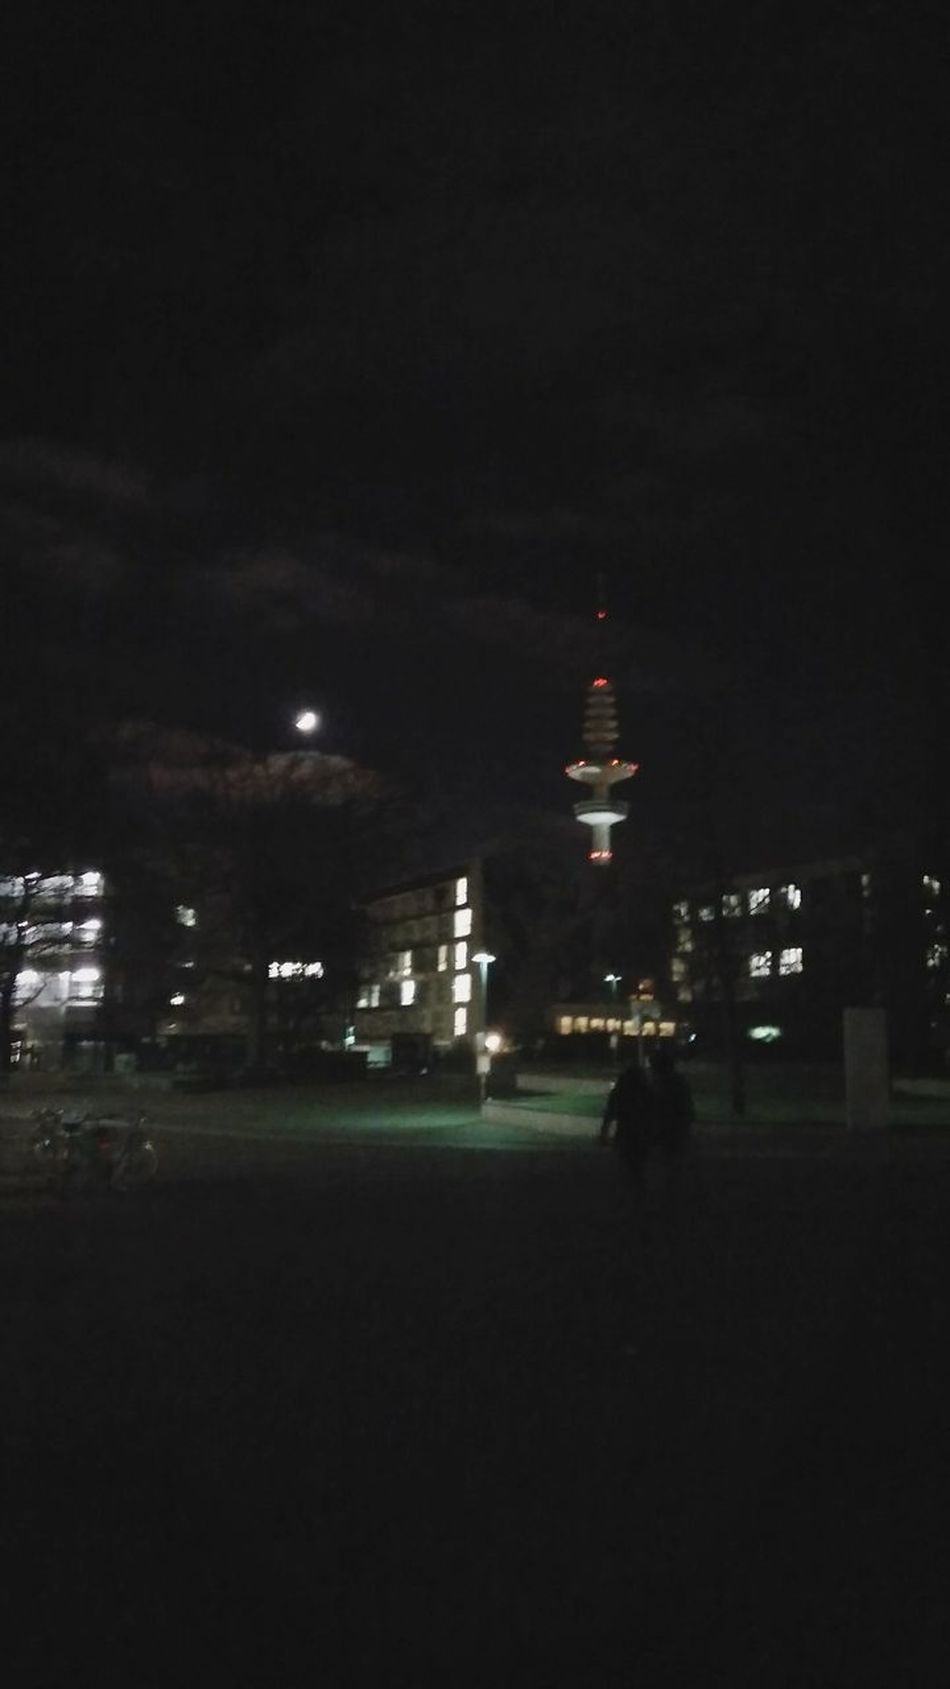 University Campus Collage with Heinrich-Hertz-Turm, Moon, and People. · Hamburg Germany 040 Hh Messeturm Universität Hamburg Urban Landscape City Lights Night Lights Night Photography Portrait Mode Low Quality